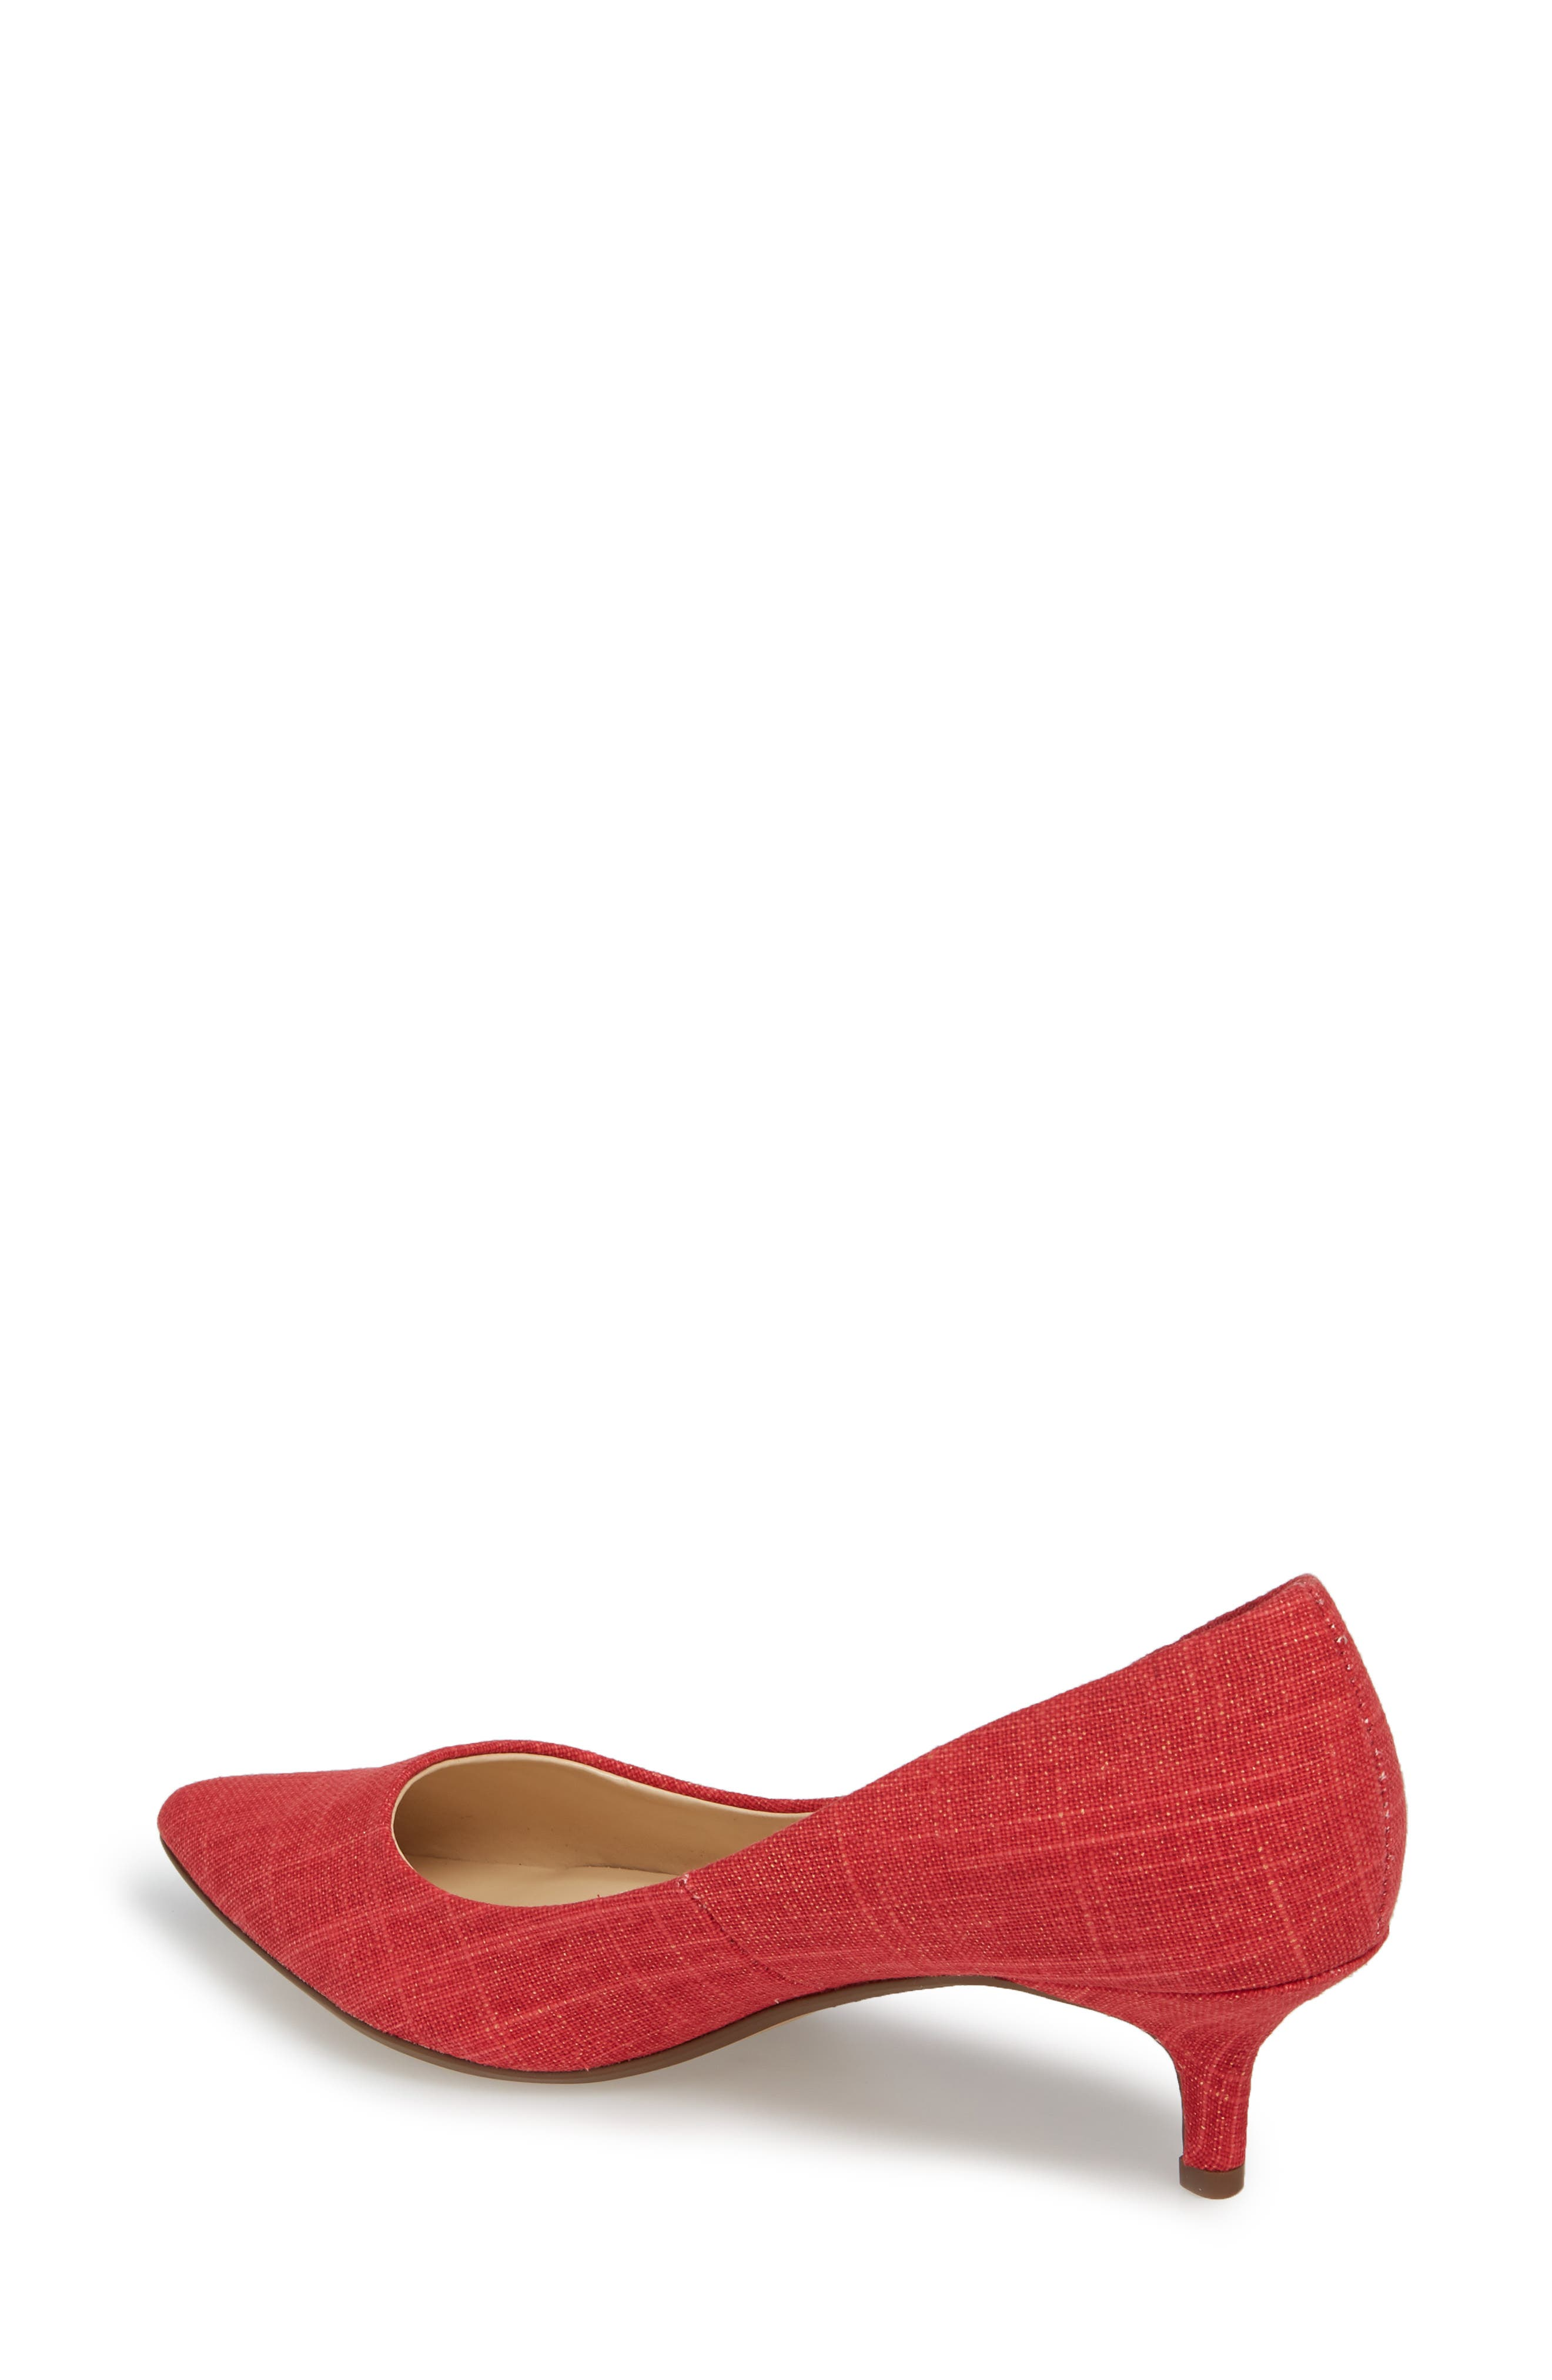 Target Kitten Heel Pump,                             Alternate thumbnail 2, color,                             Red Fabric